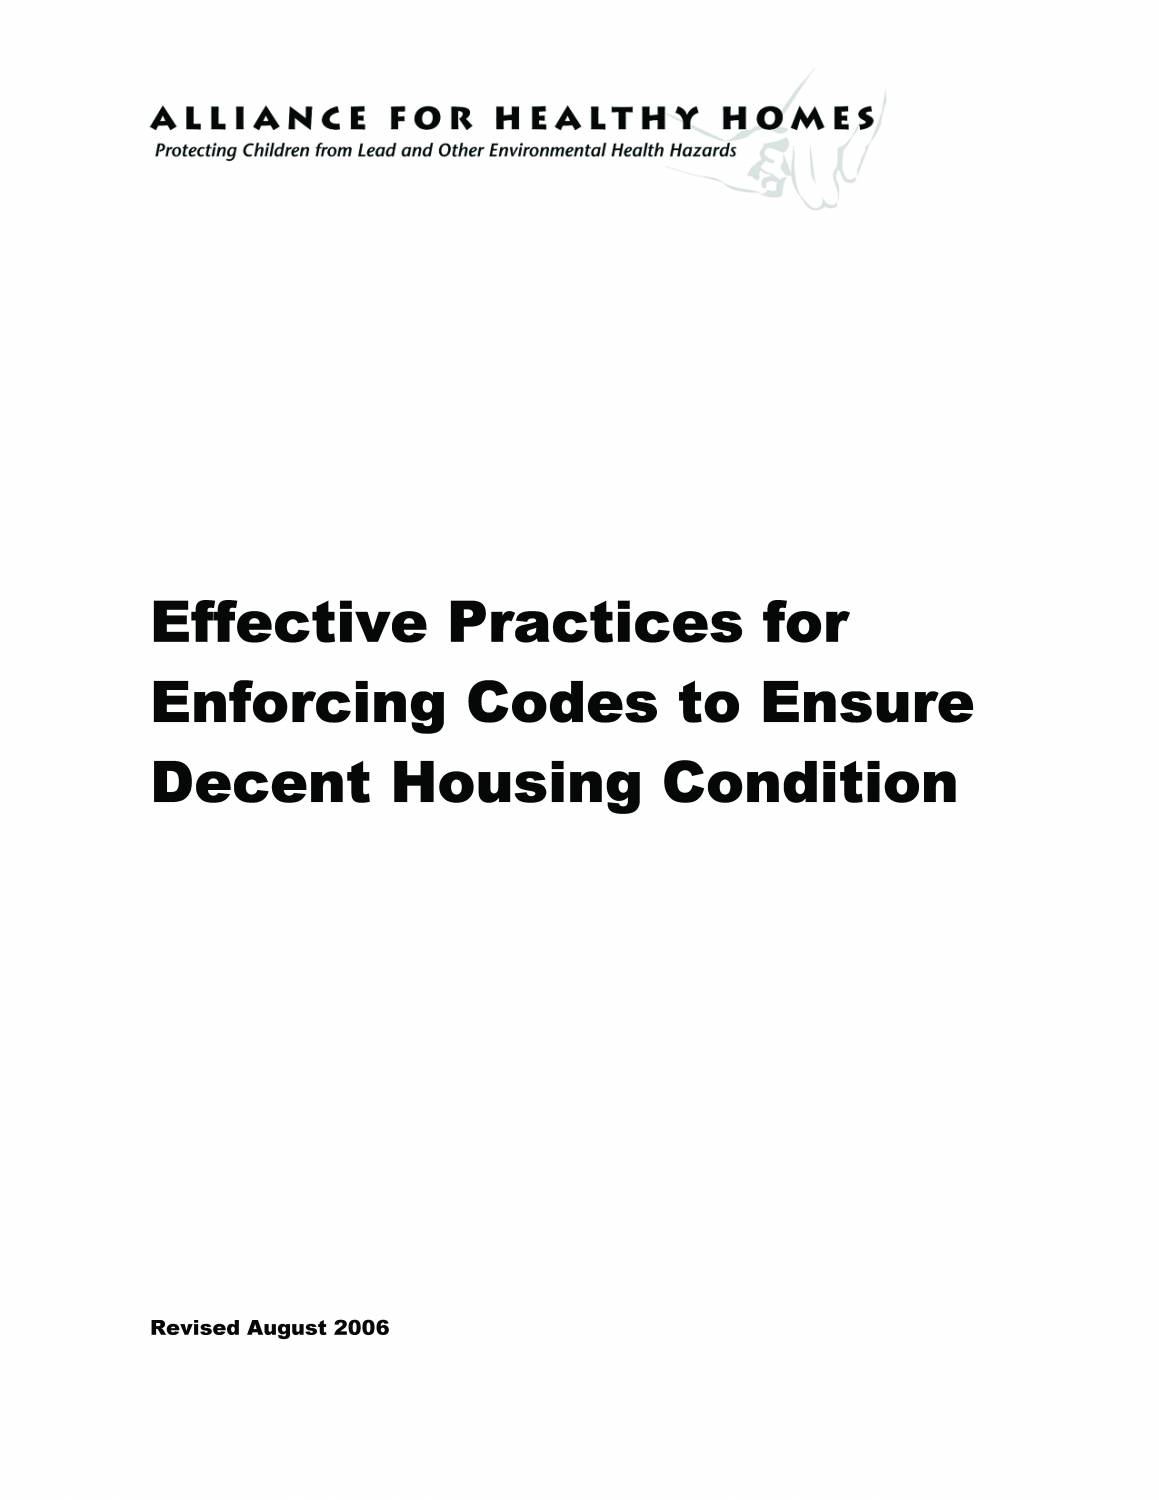 Effective Practices for Enforcing Codes to Ensure Decent Housing Condition (Revised August 2006)